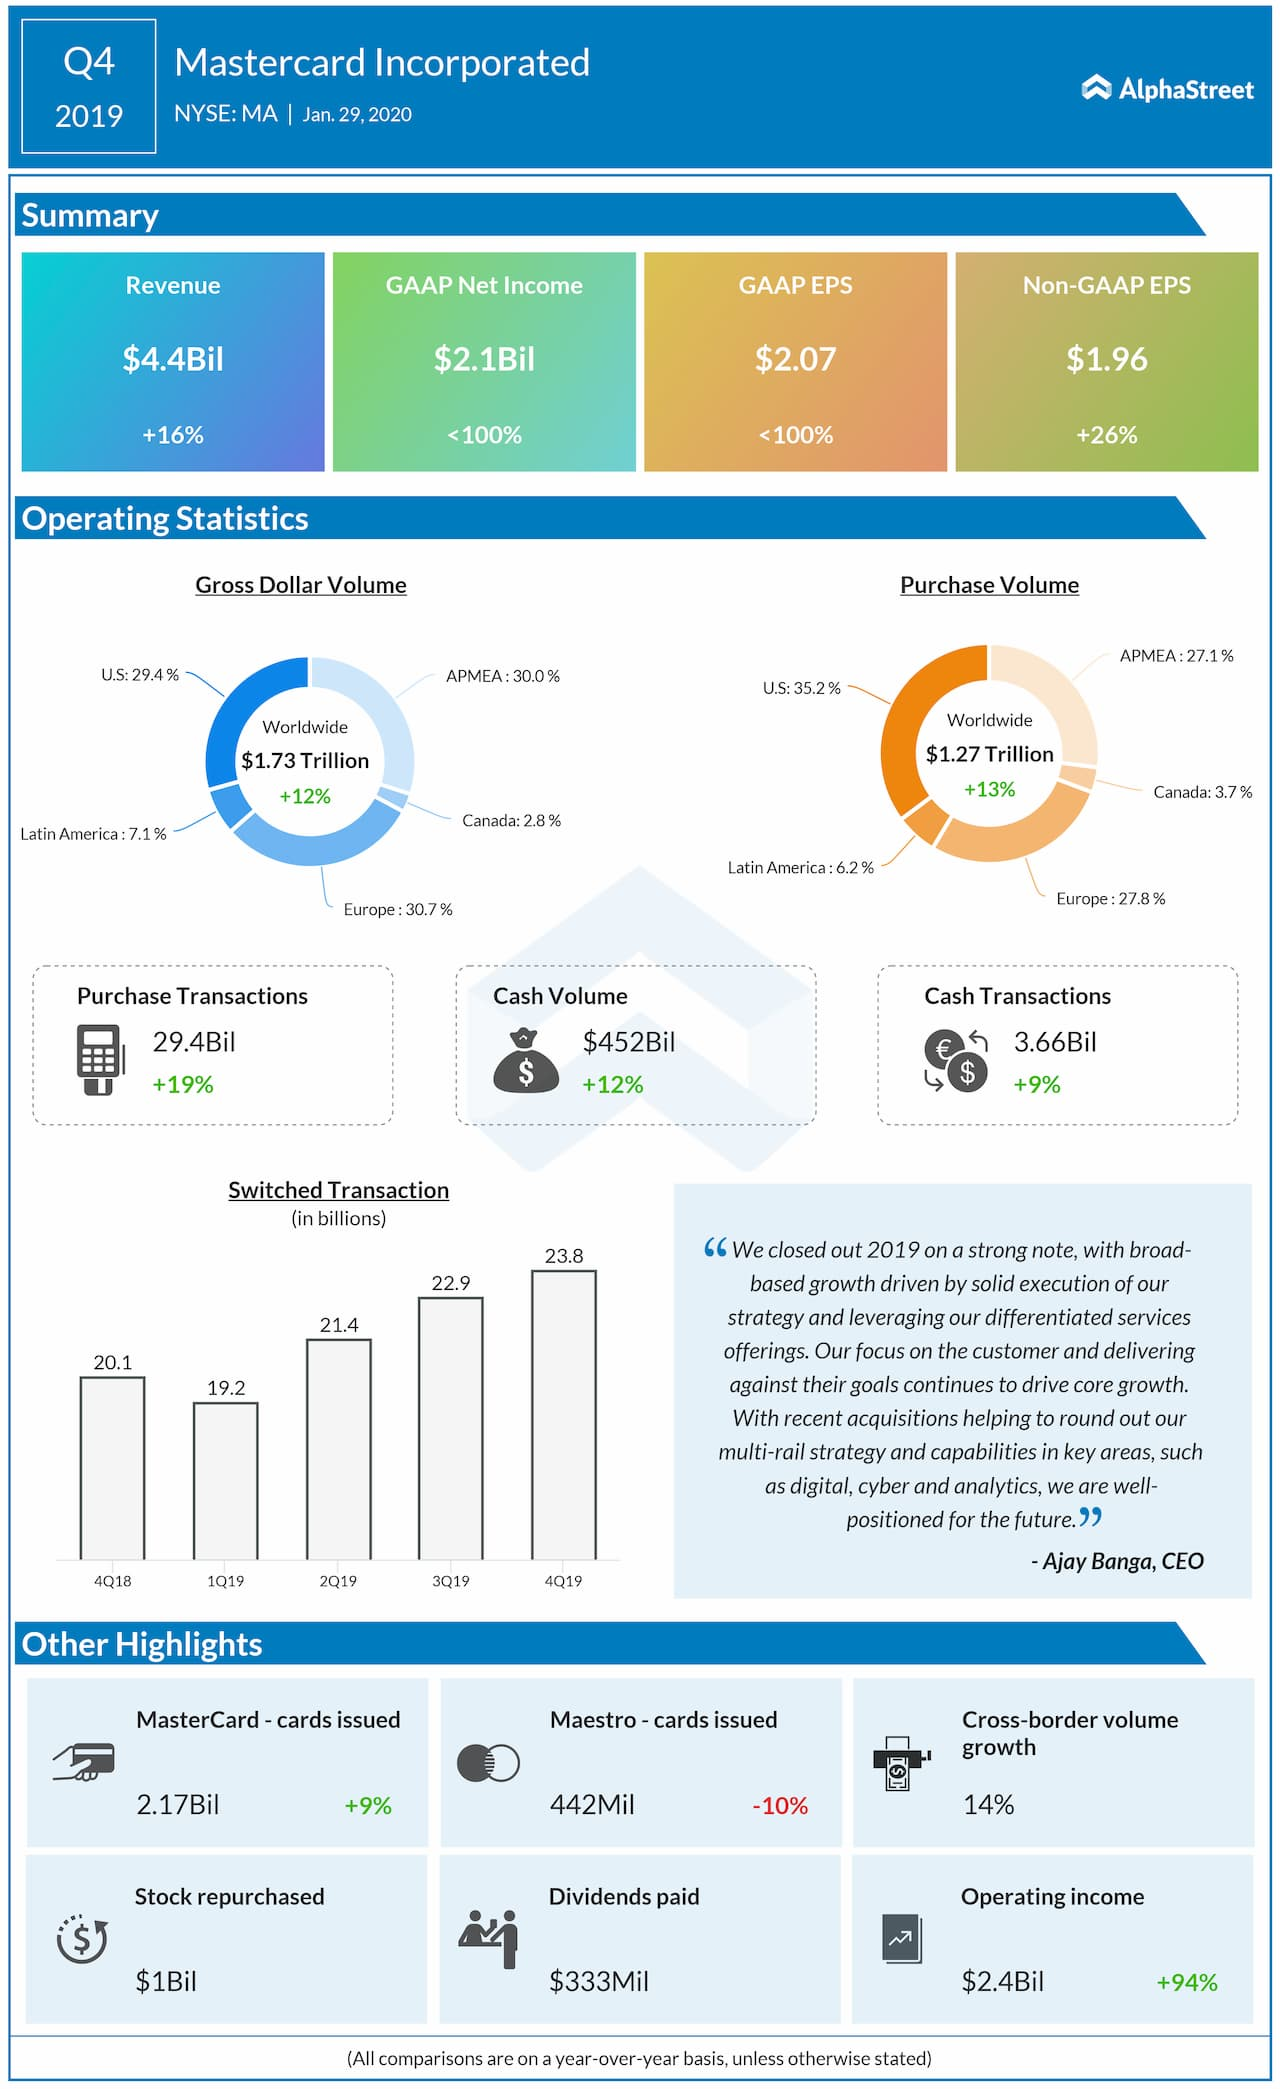 Mastercard (MA) Q4 2019 Earnings Review